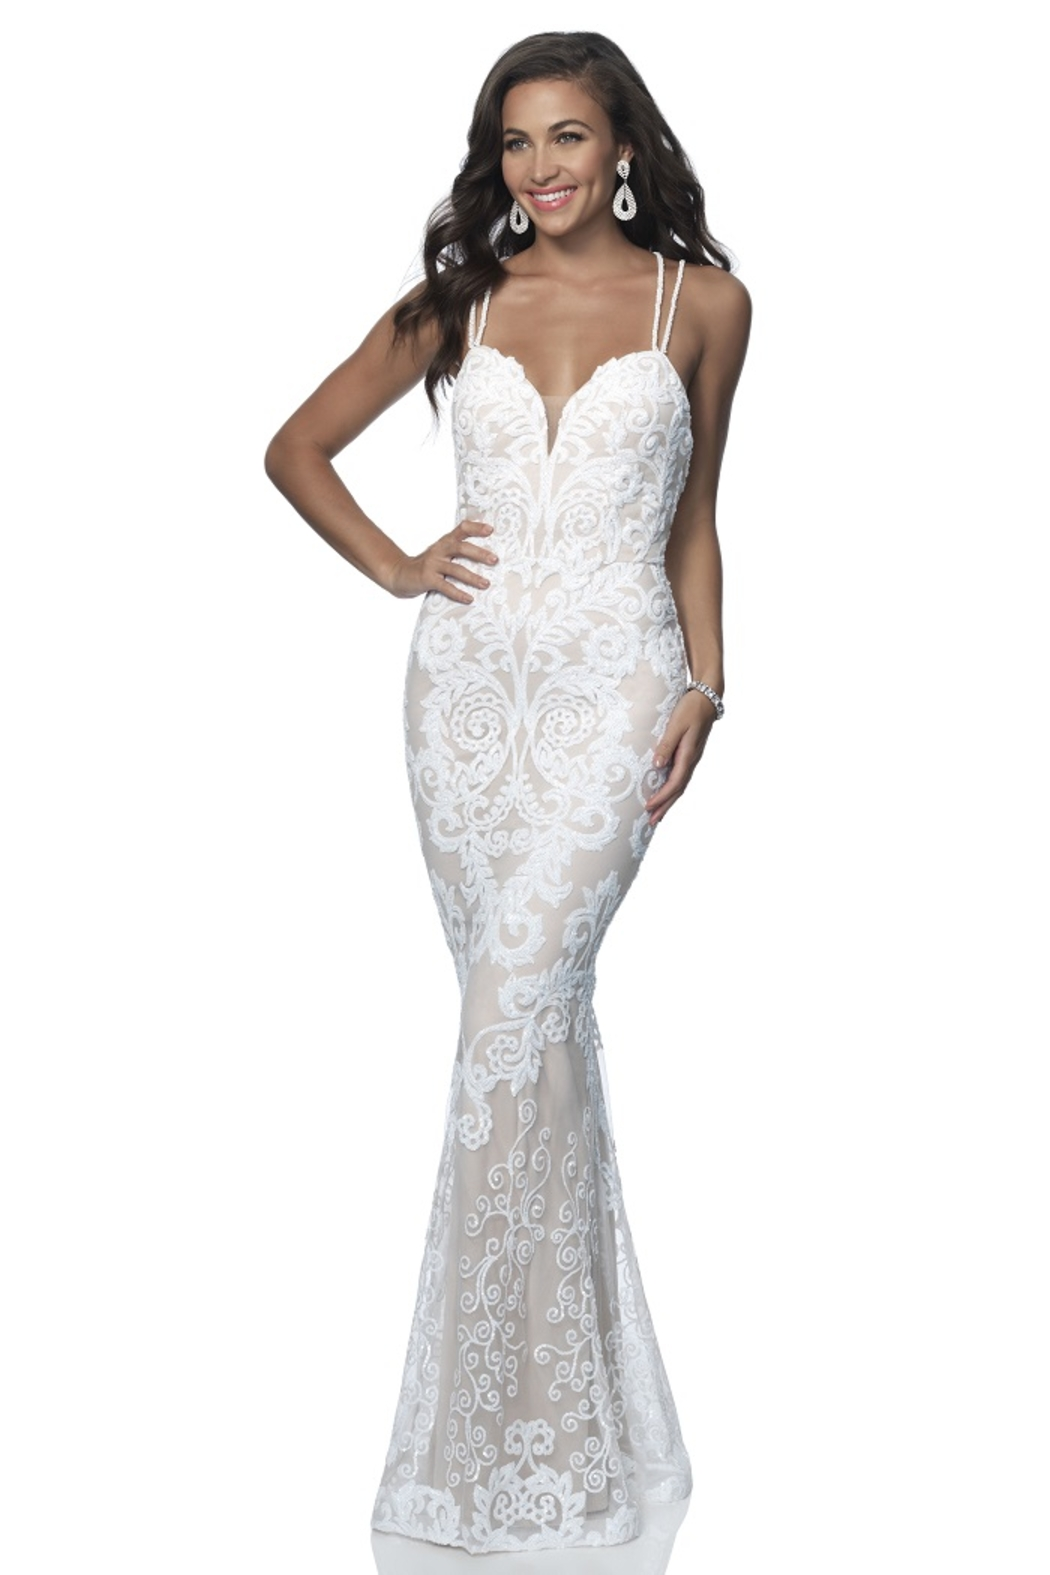 Blush Prom Off White & Nude Sequin Fit & Flare Bridal Gown - Main Image